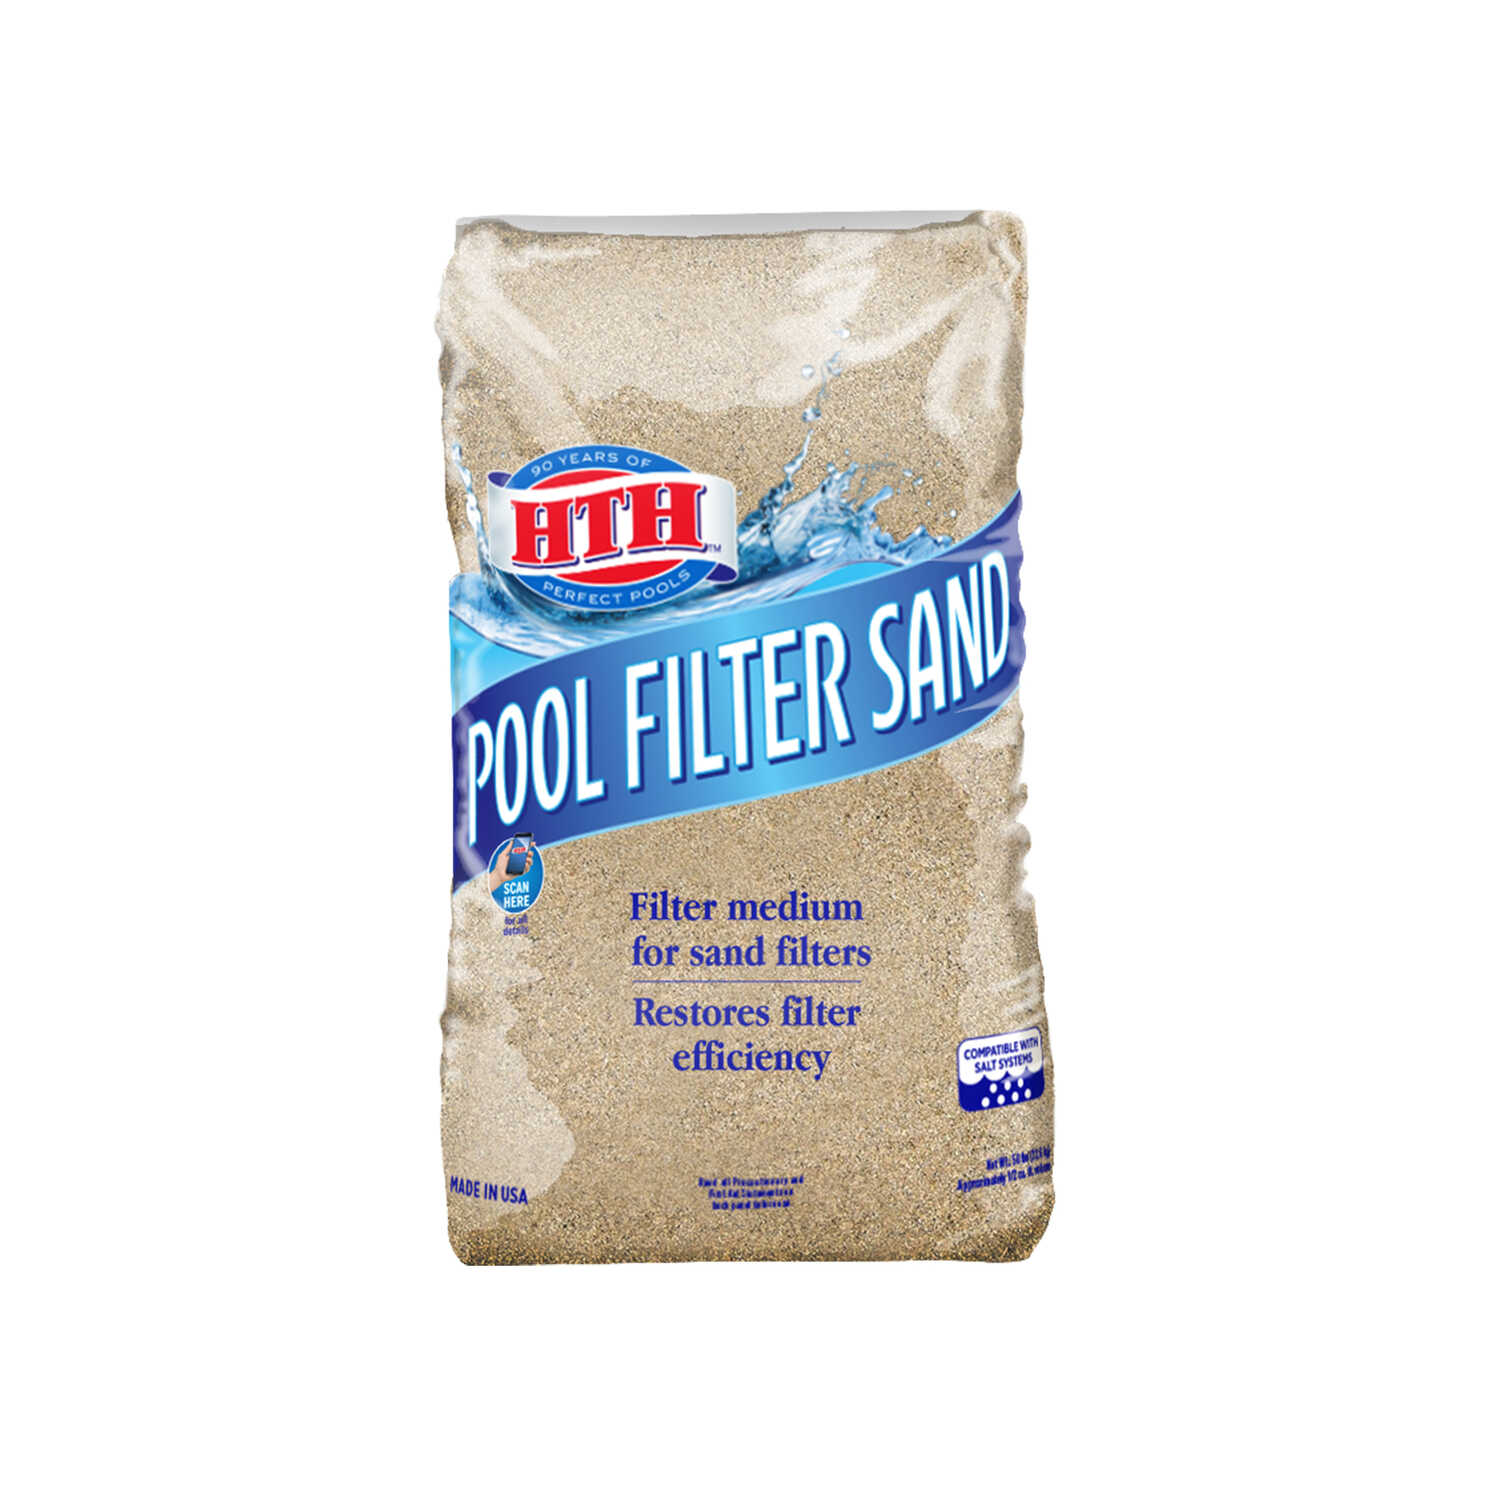 Stupendous Hth Pool Filter Sand 50 Lb 26 In H X 14 In W X 4 In L Interior Design Ideas Gentotthenellocom